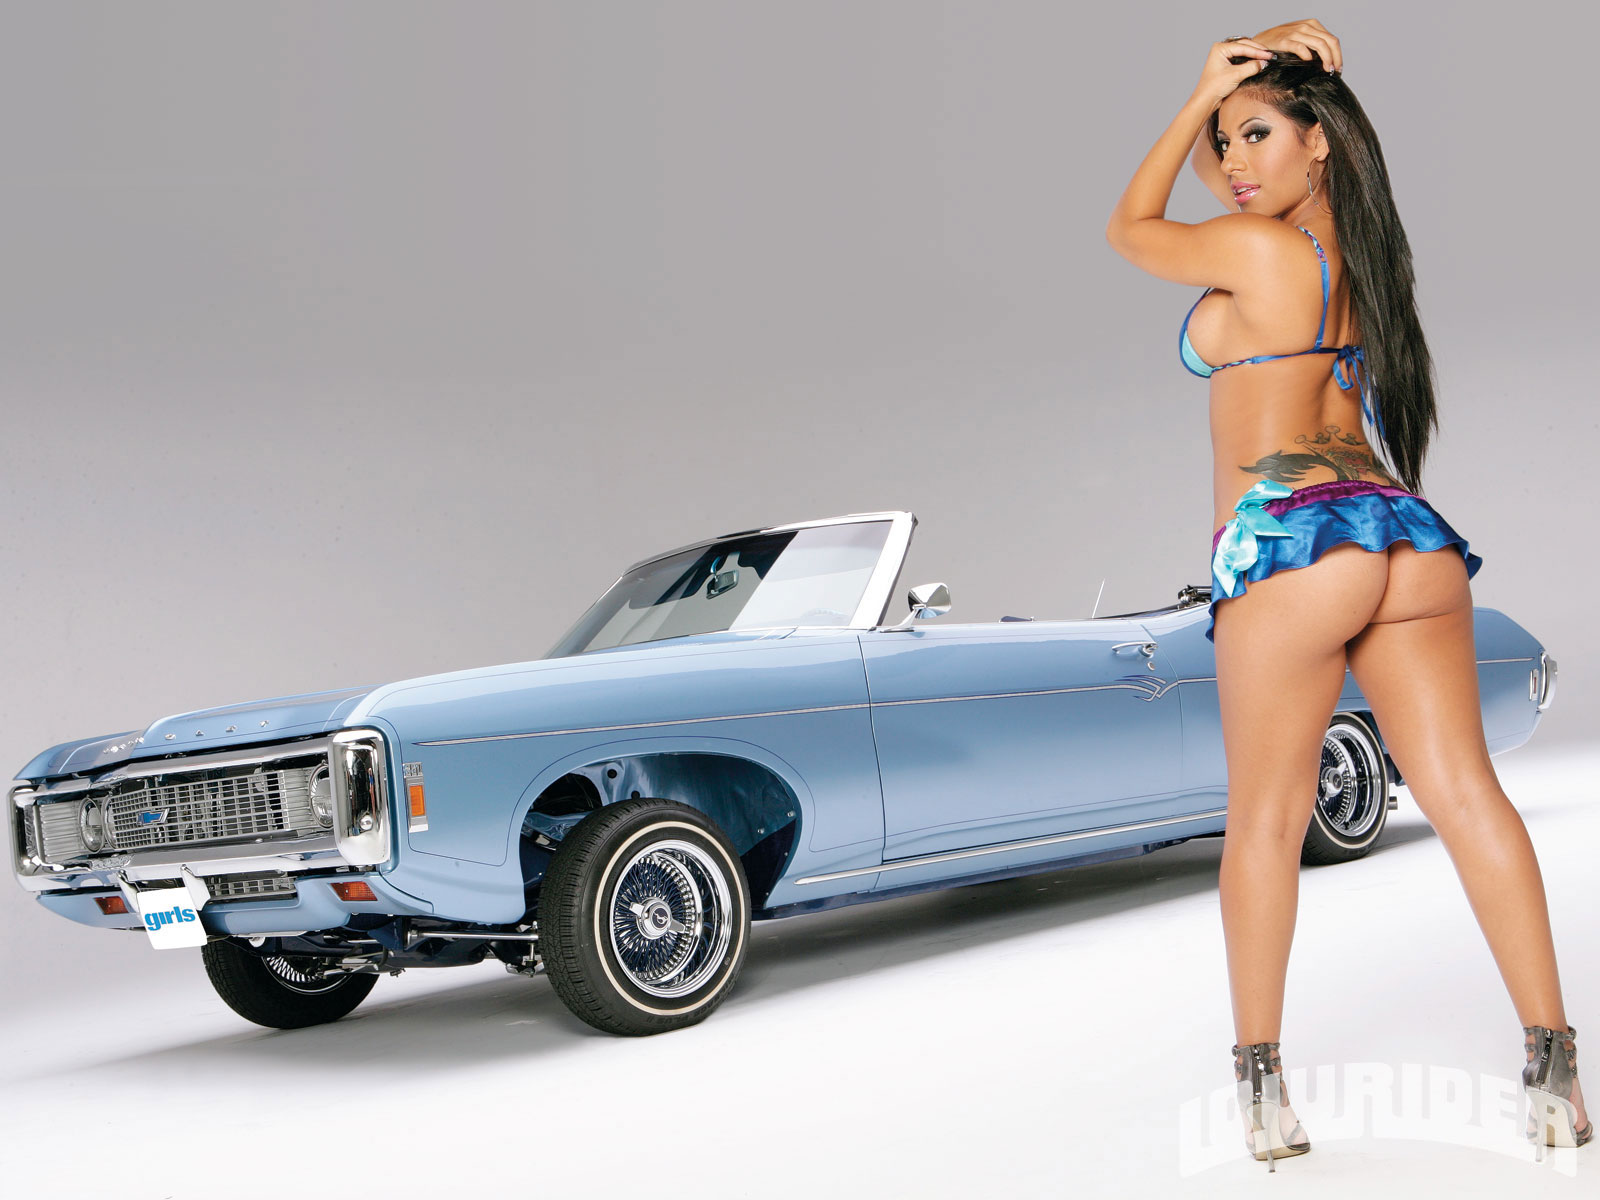 Can defined? Lowrider with naked graphics opinion